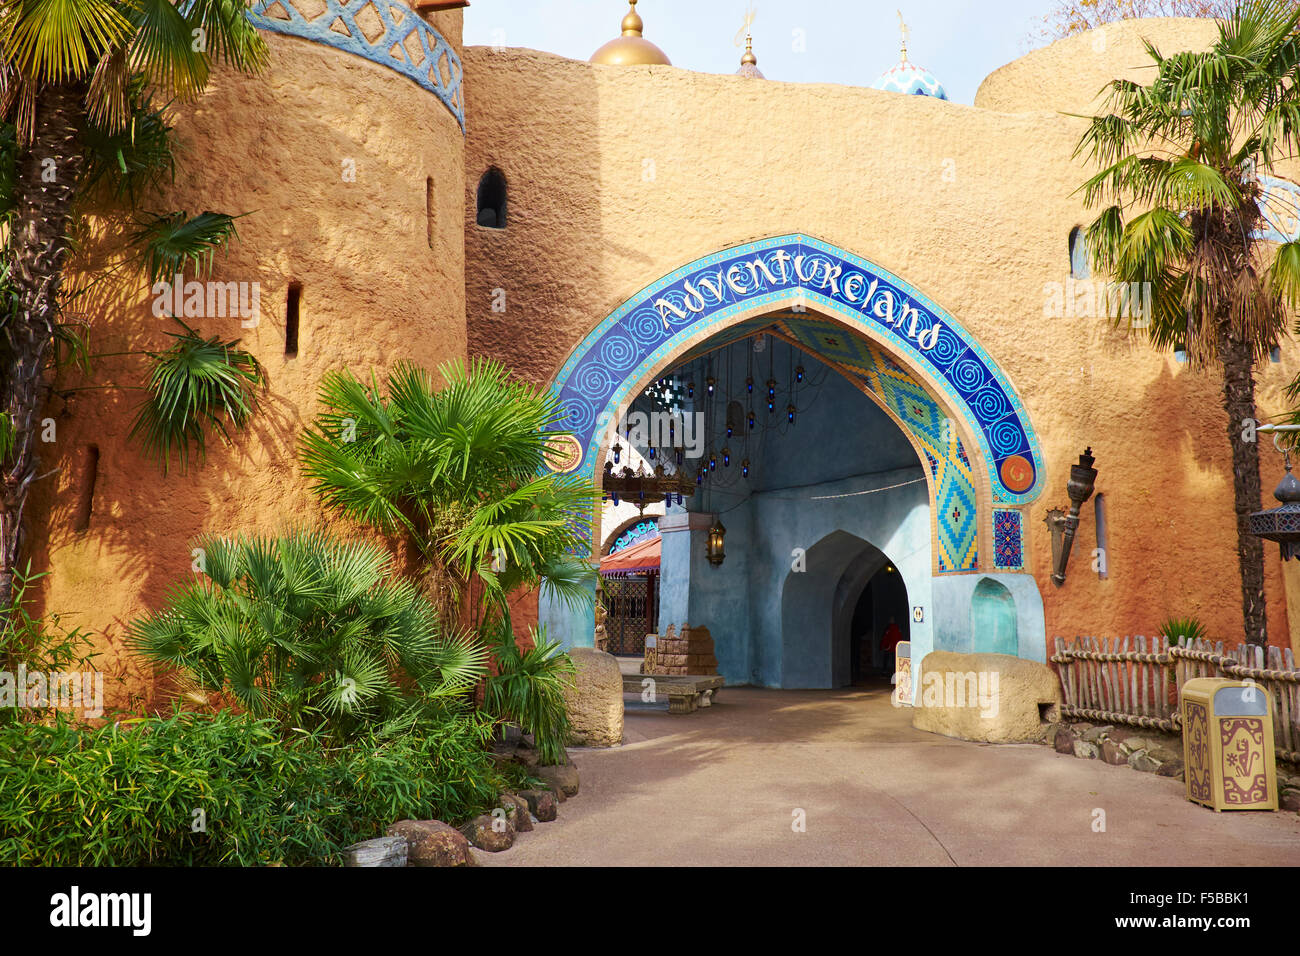 adventureland disneyland paris stock photos adventureland disneyland paris stock images alamy. Black Bedroom Furniture Sets. Home Design Ideas